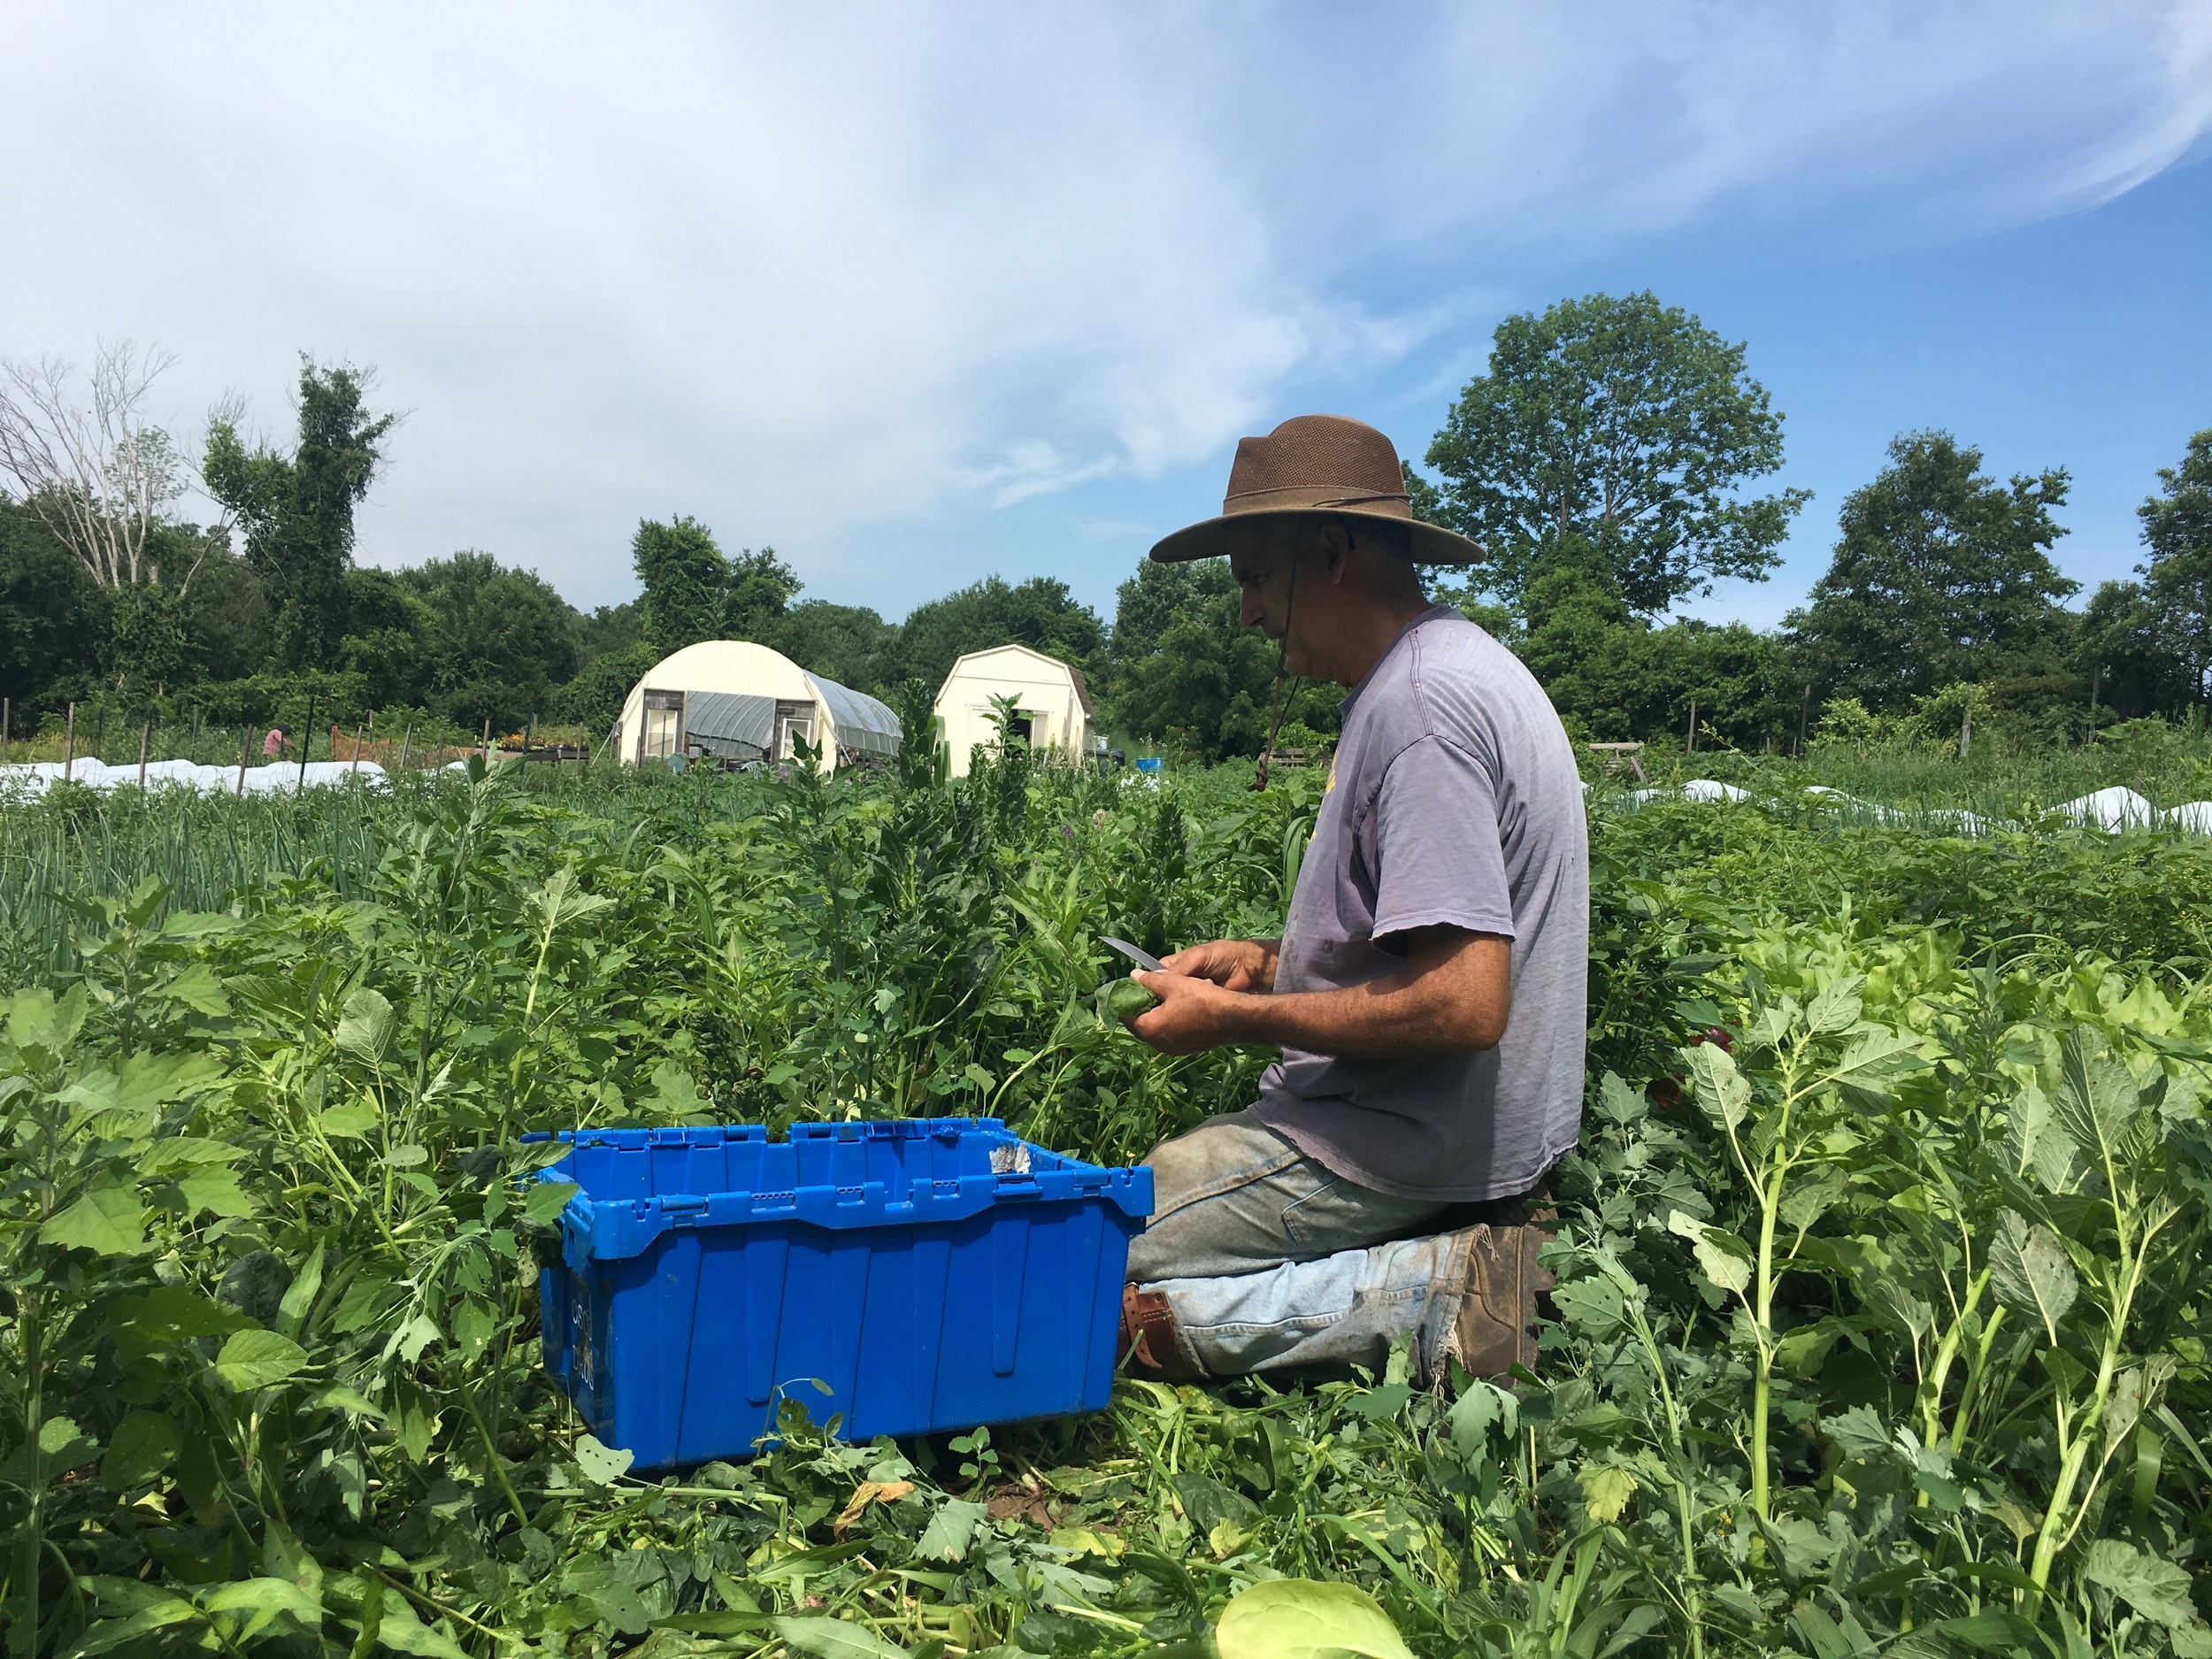 Steve Stycos, a Cranston City Councilor and proprietor of Westbay Farm on Centerville Road in Warwick, shears spinach in the field.